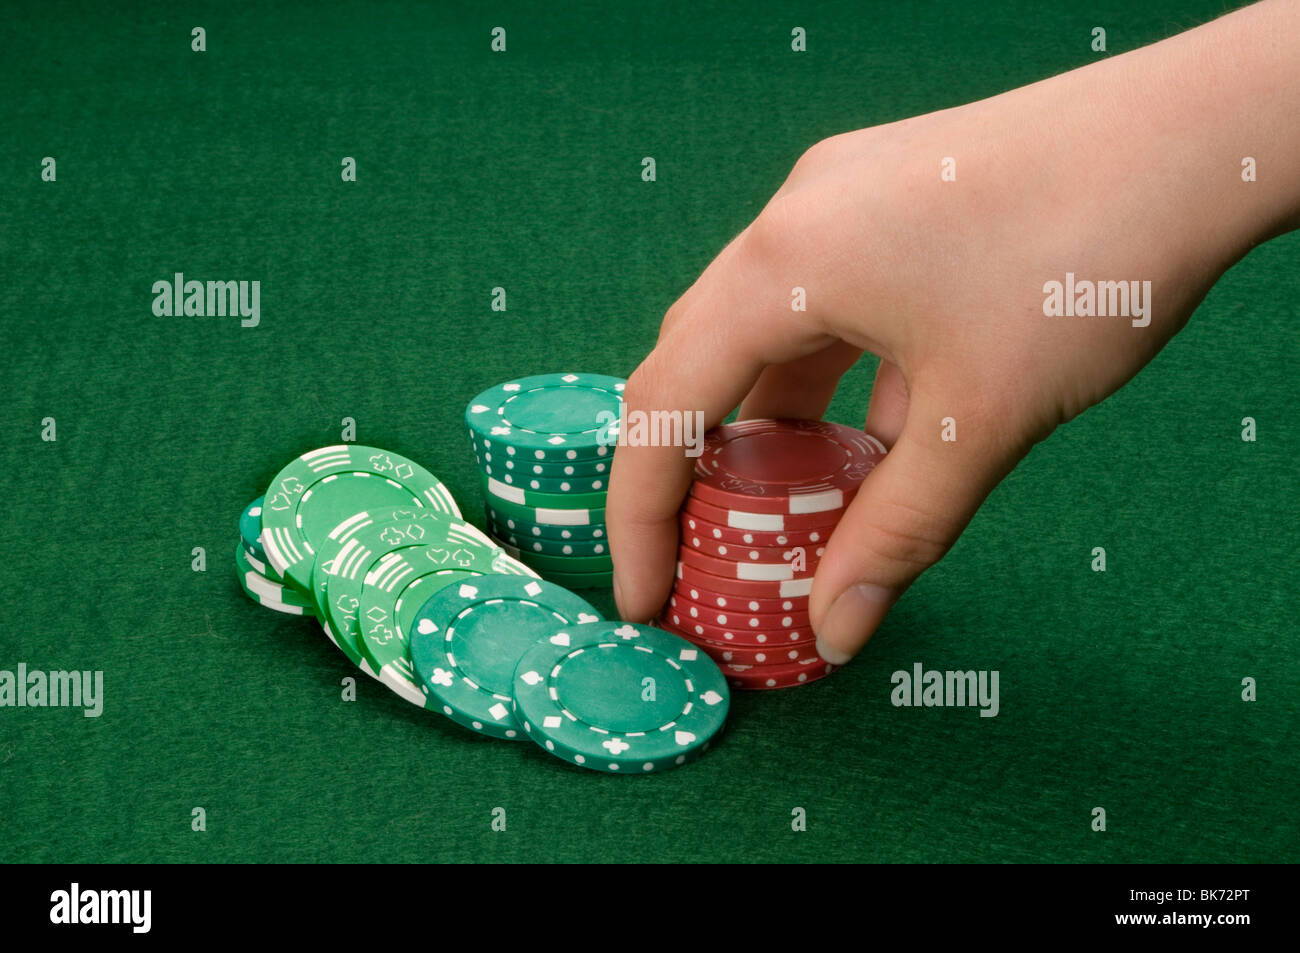 hand holding gambling chips - Stock Image